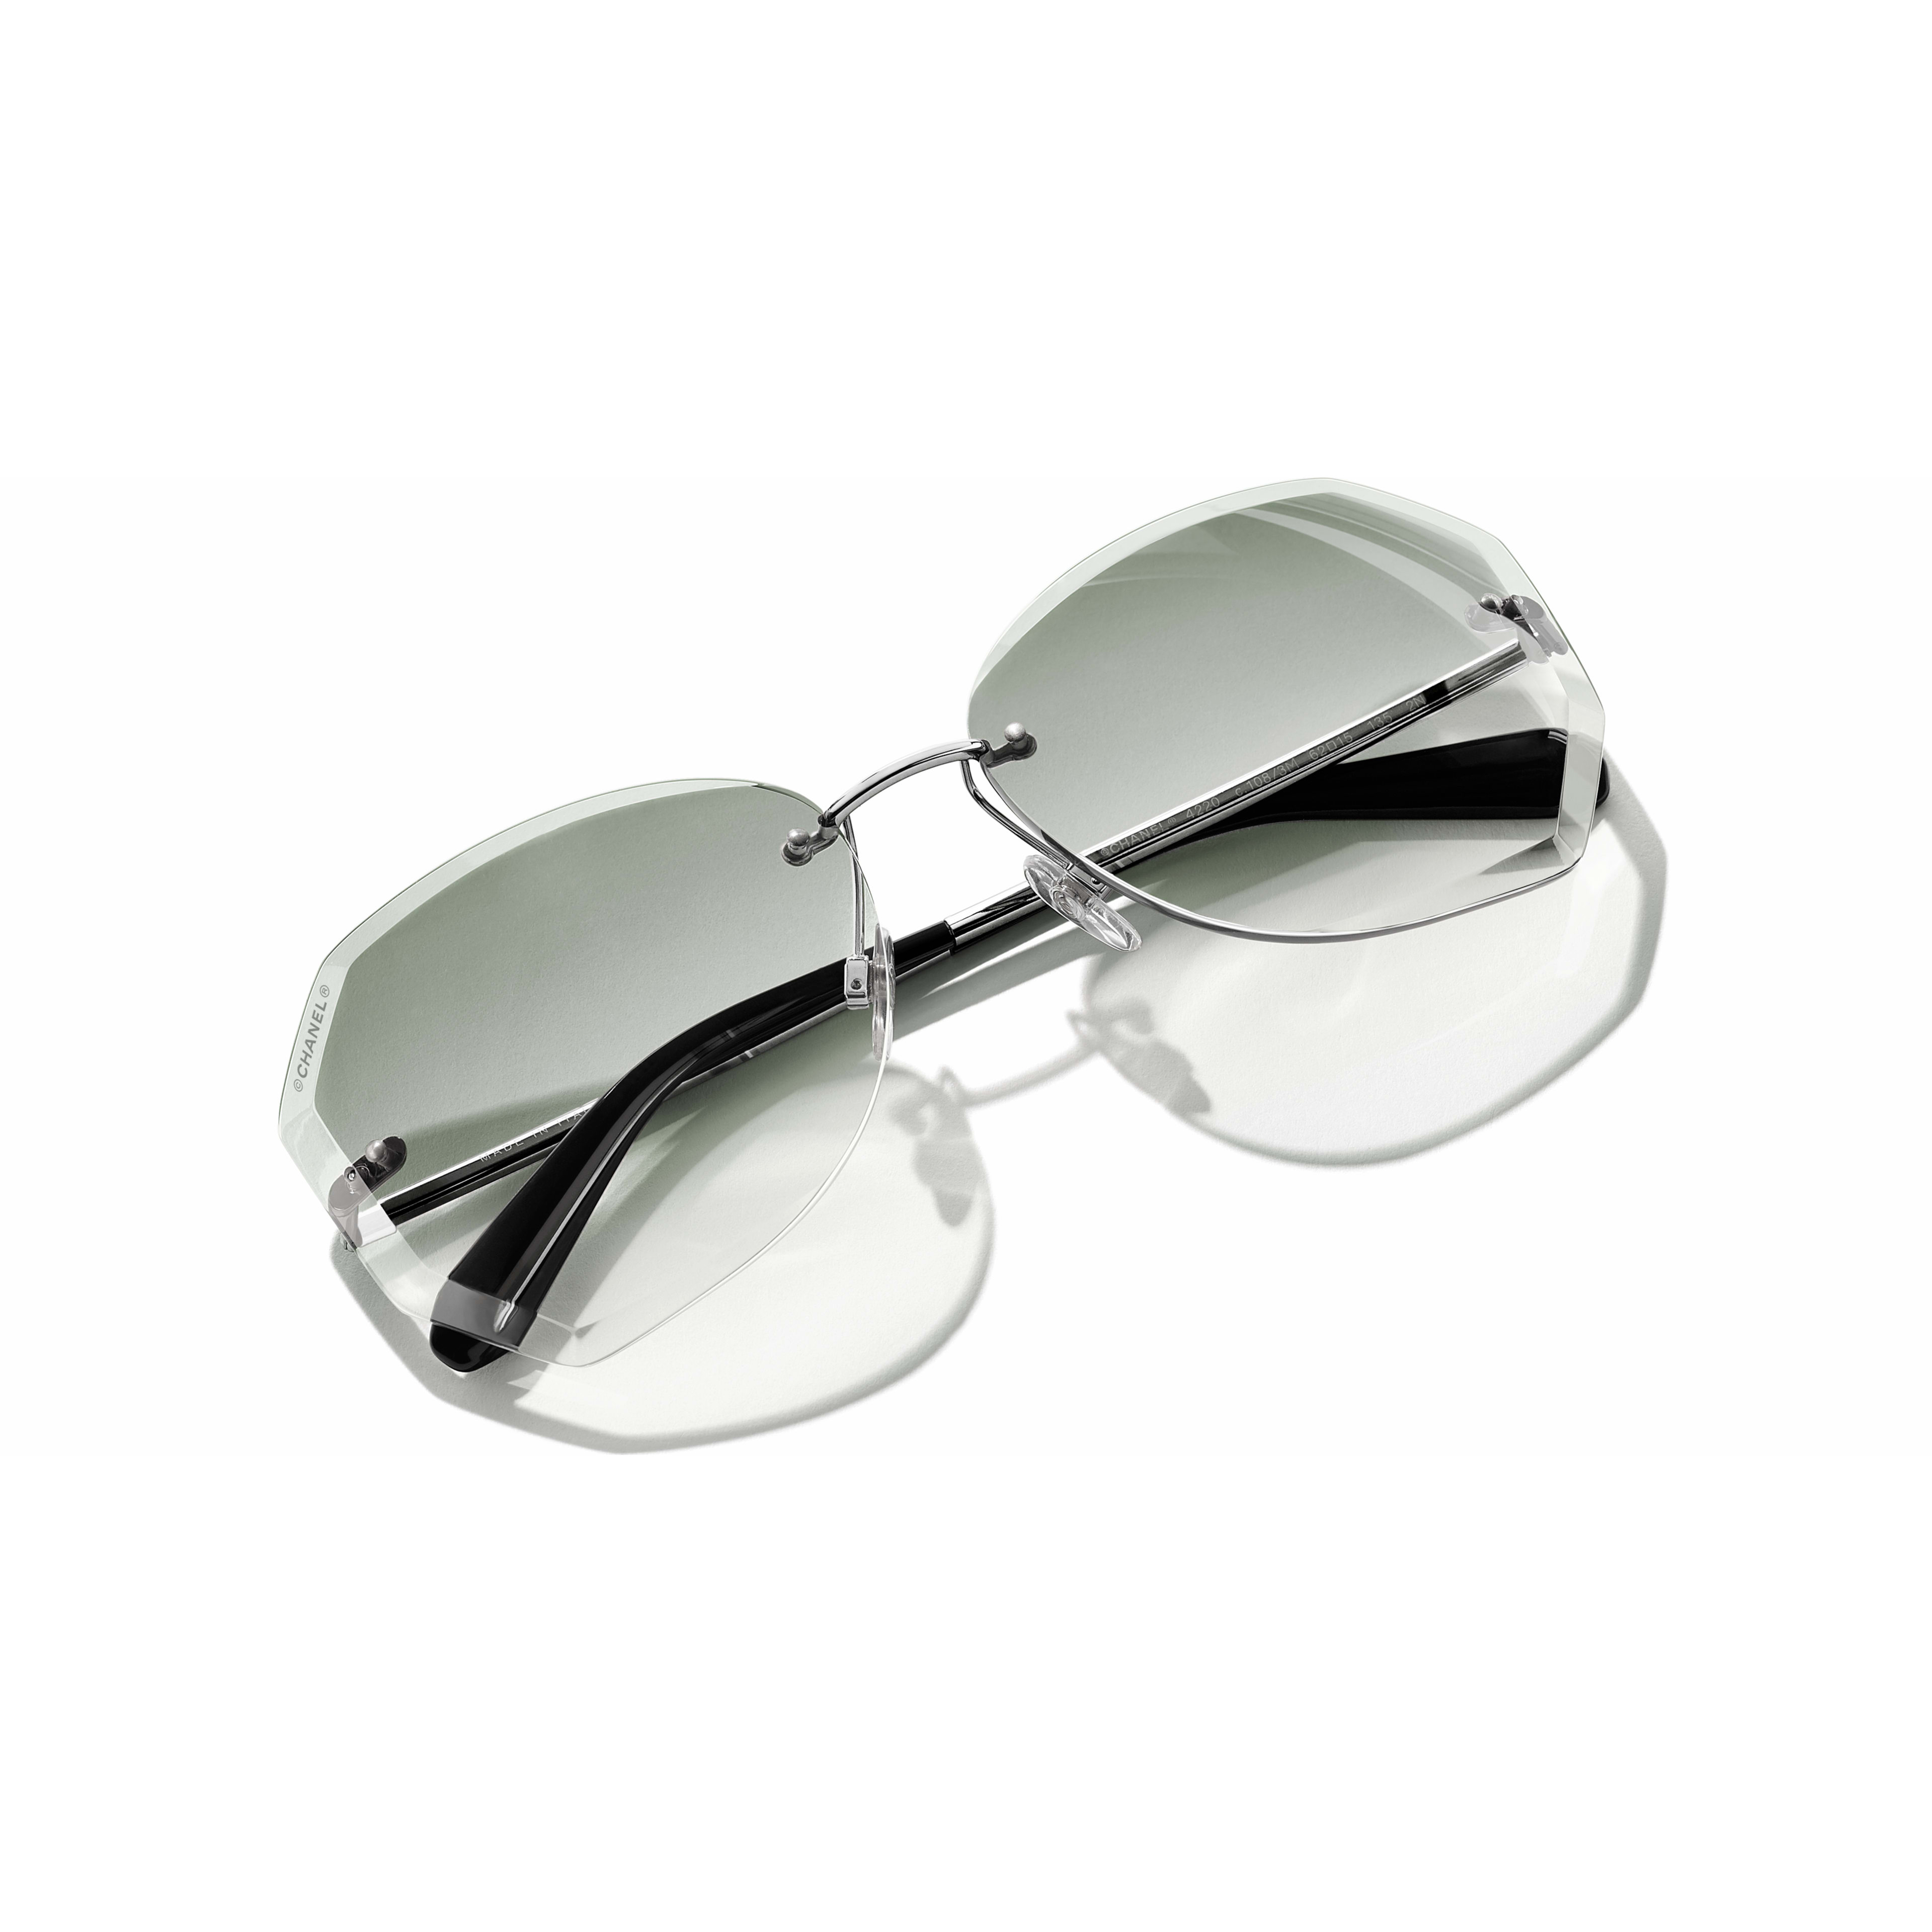 Round Sunglasses Metal Silver & Green -                                                               view 1 - see full sized version